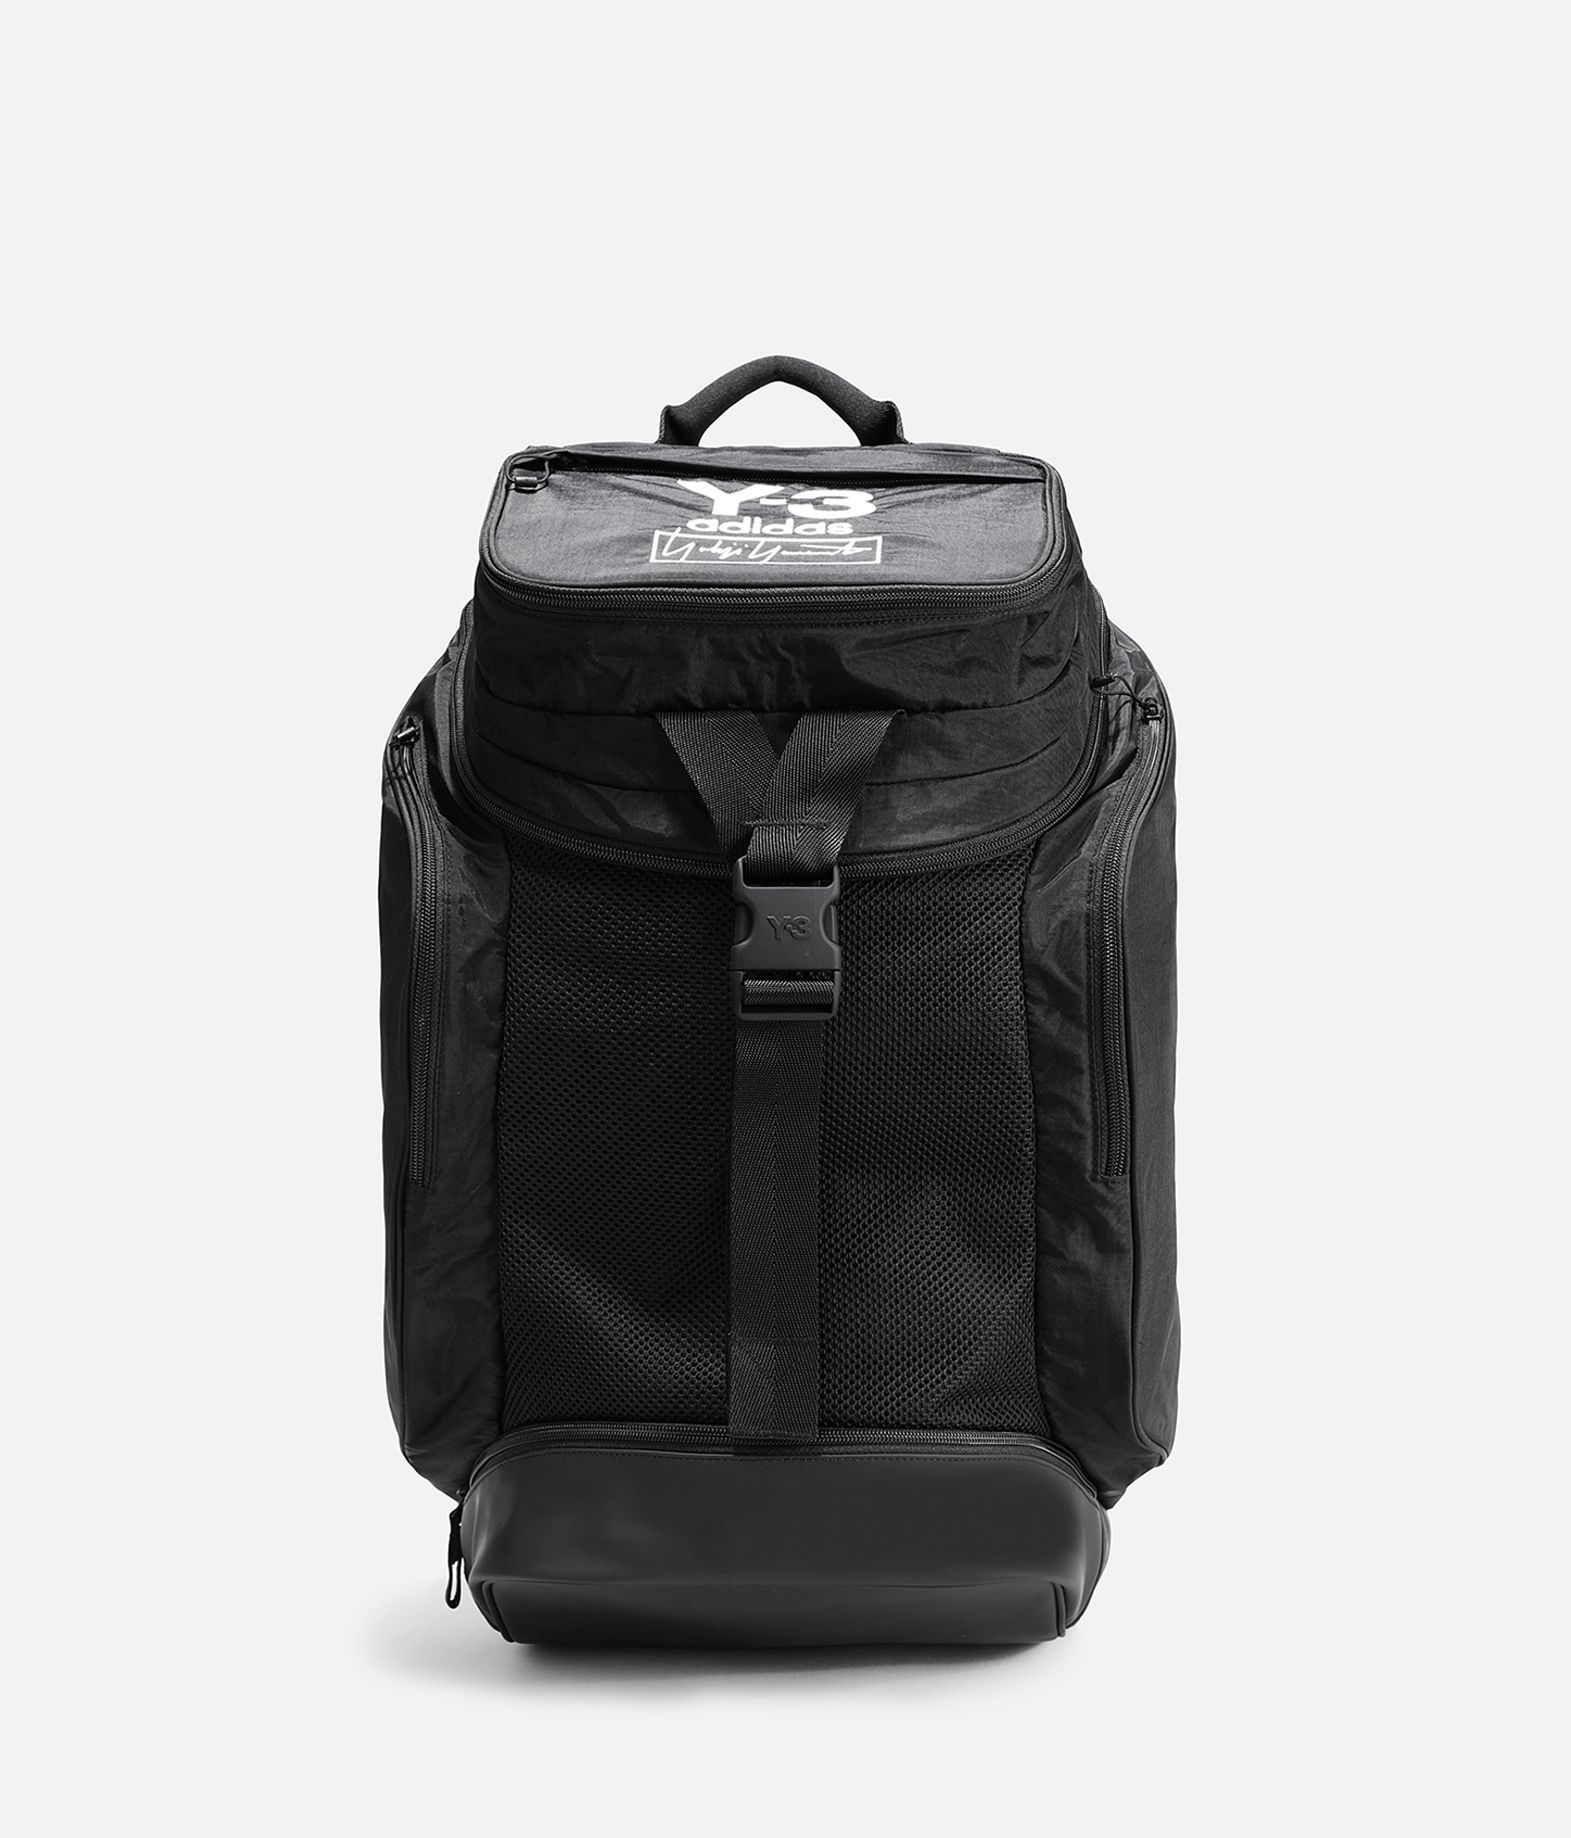 Y-3 Y-3 Travel Backpack Backpack E f